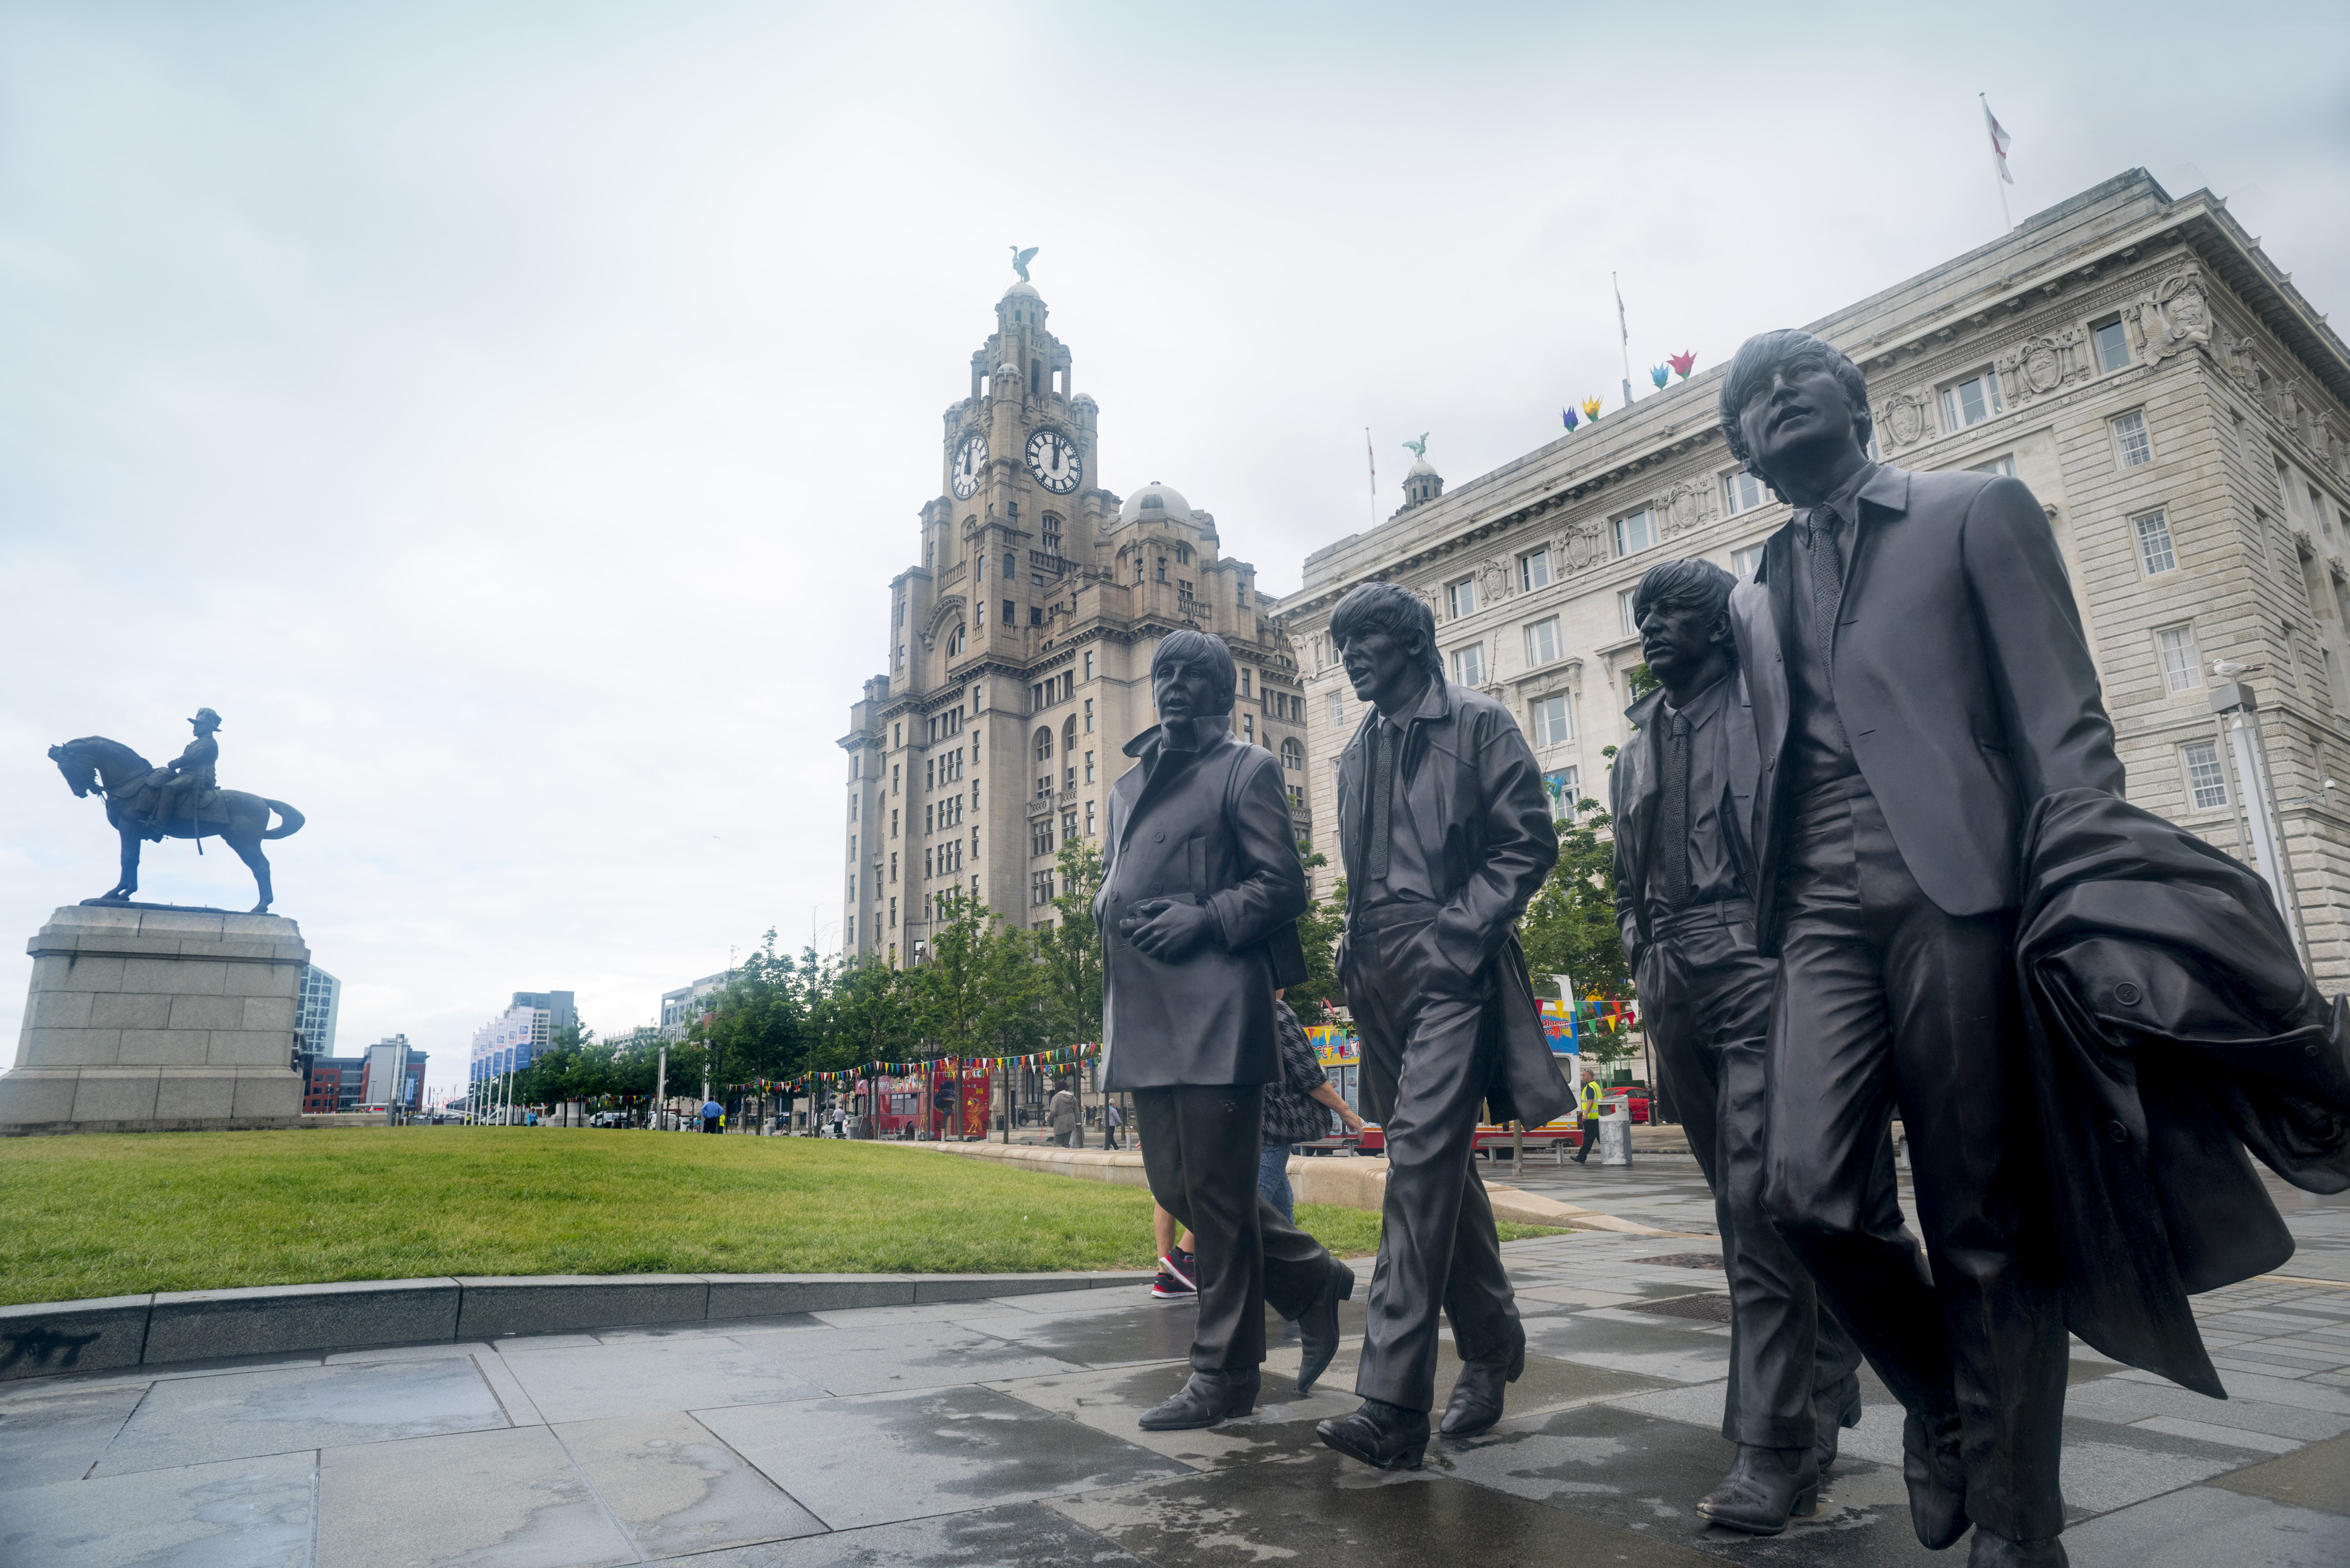 Statues of the Beatles walking near the Liver Building in Liverpool, United Kingdom